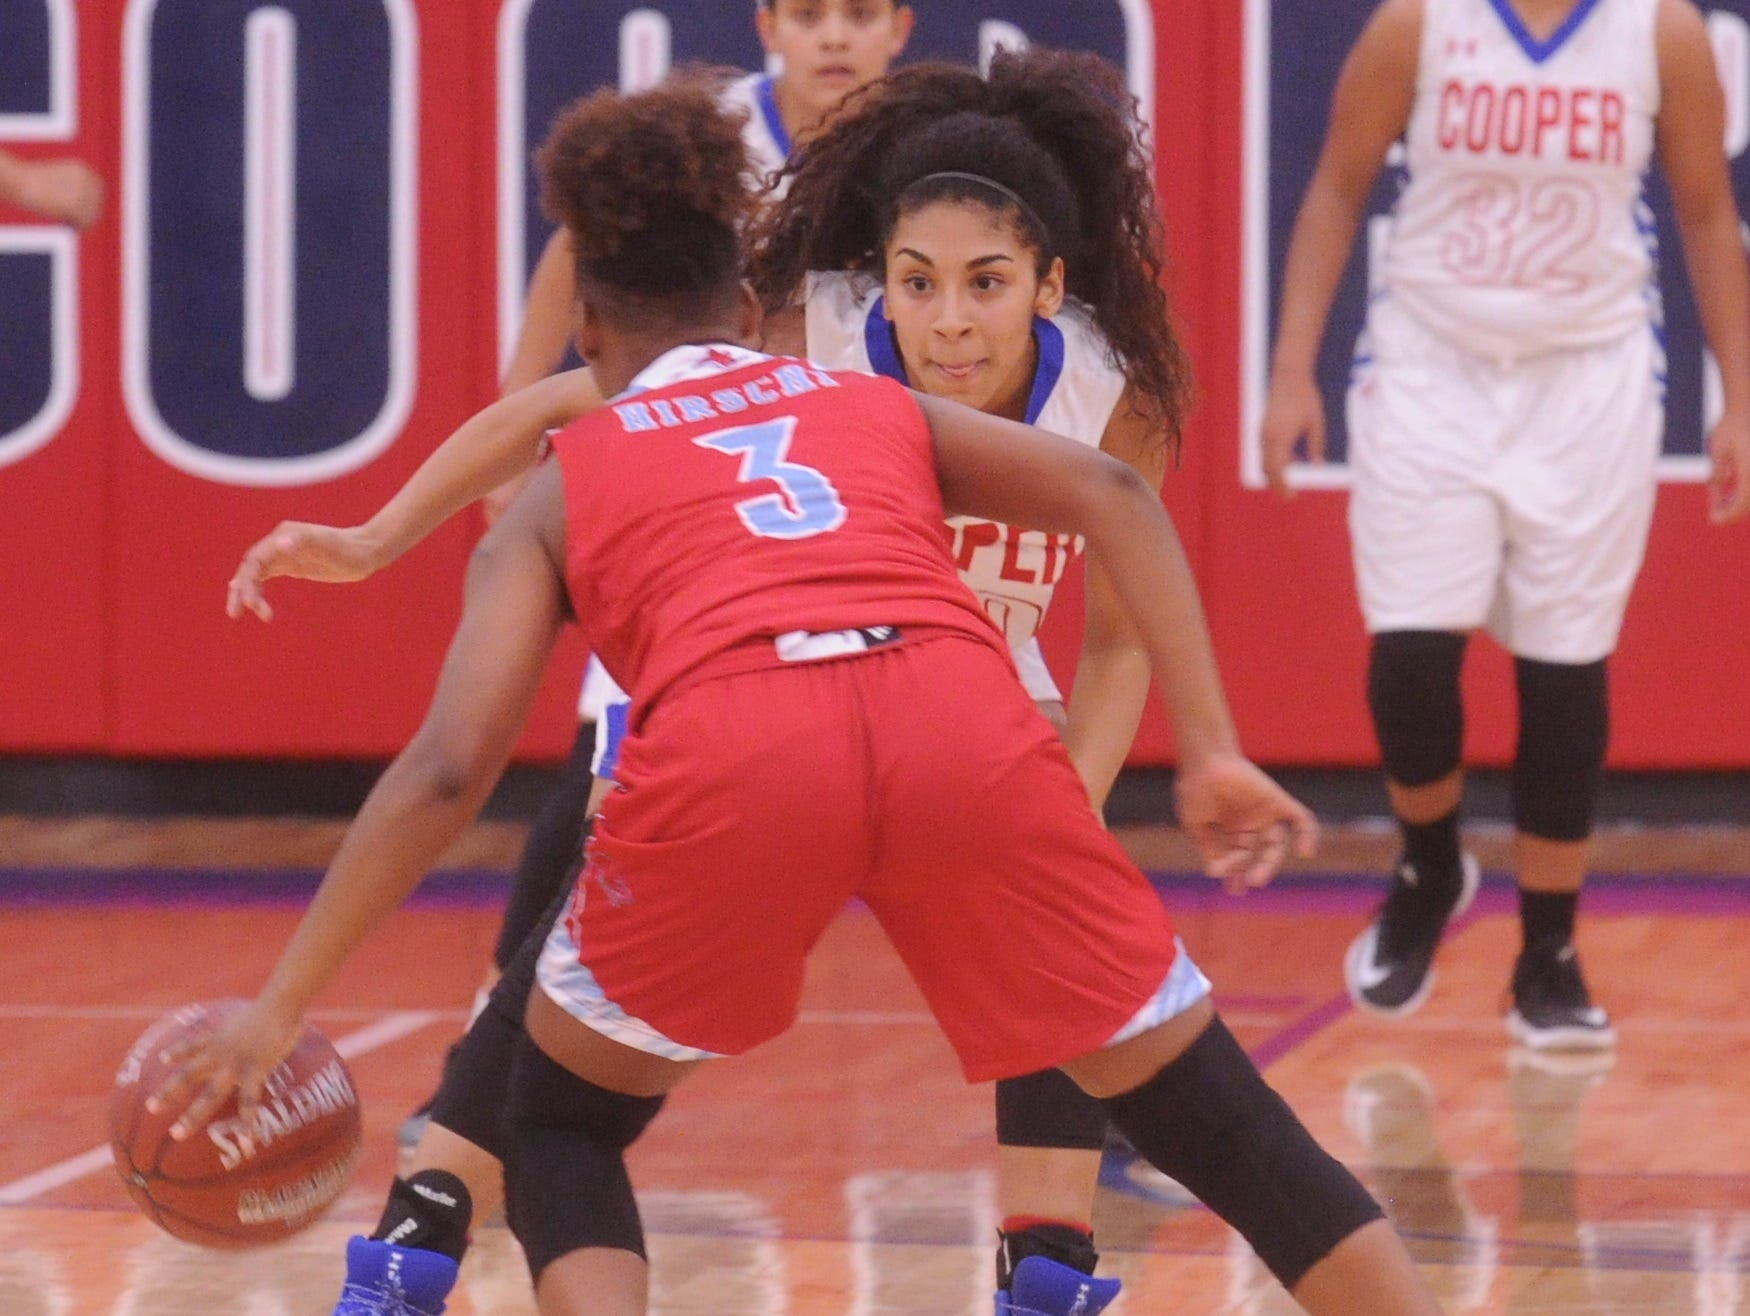 Cooper's Keiana Kemp defends against Wichita Falls Hirschi's Eternity Hull (3). Hirschi won the game 51-37 in the season opener for both teams Tuesday, Nov. 6, 2018, at Cougar Gym.